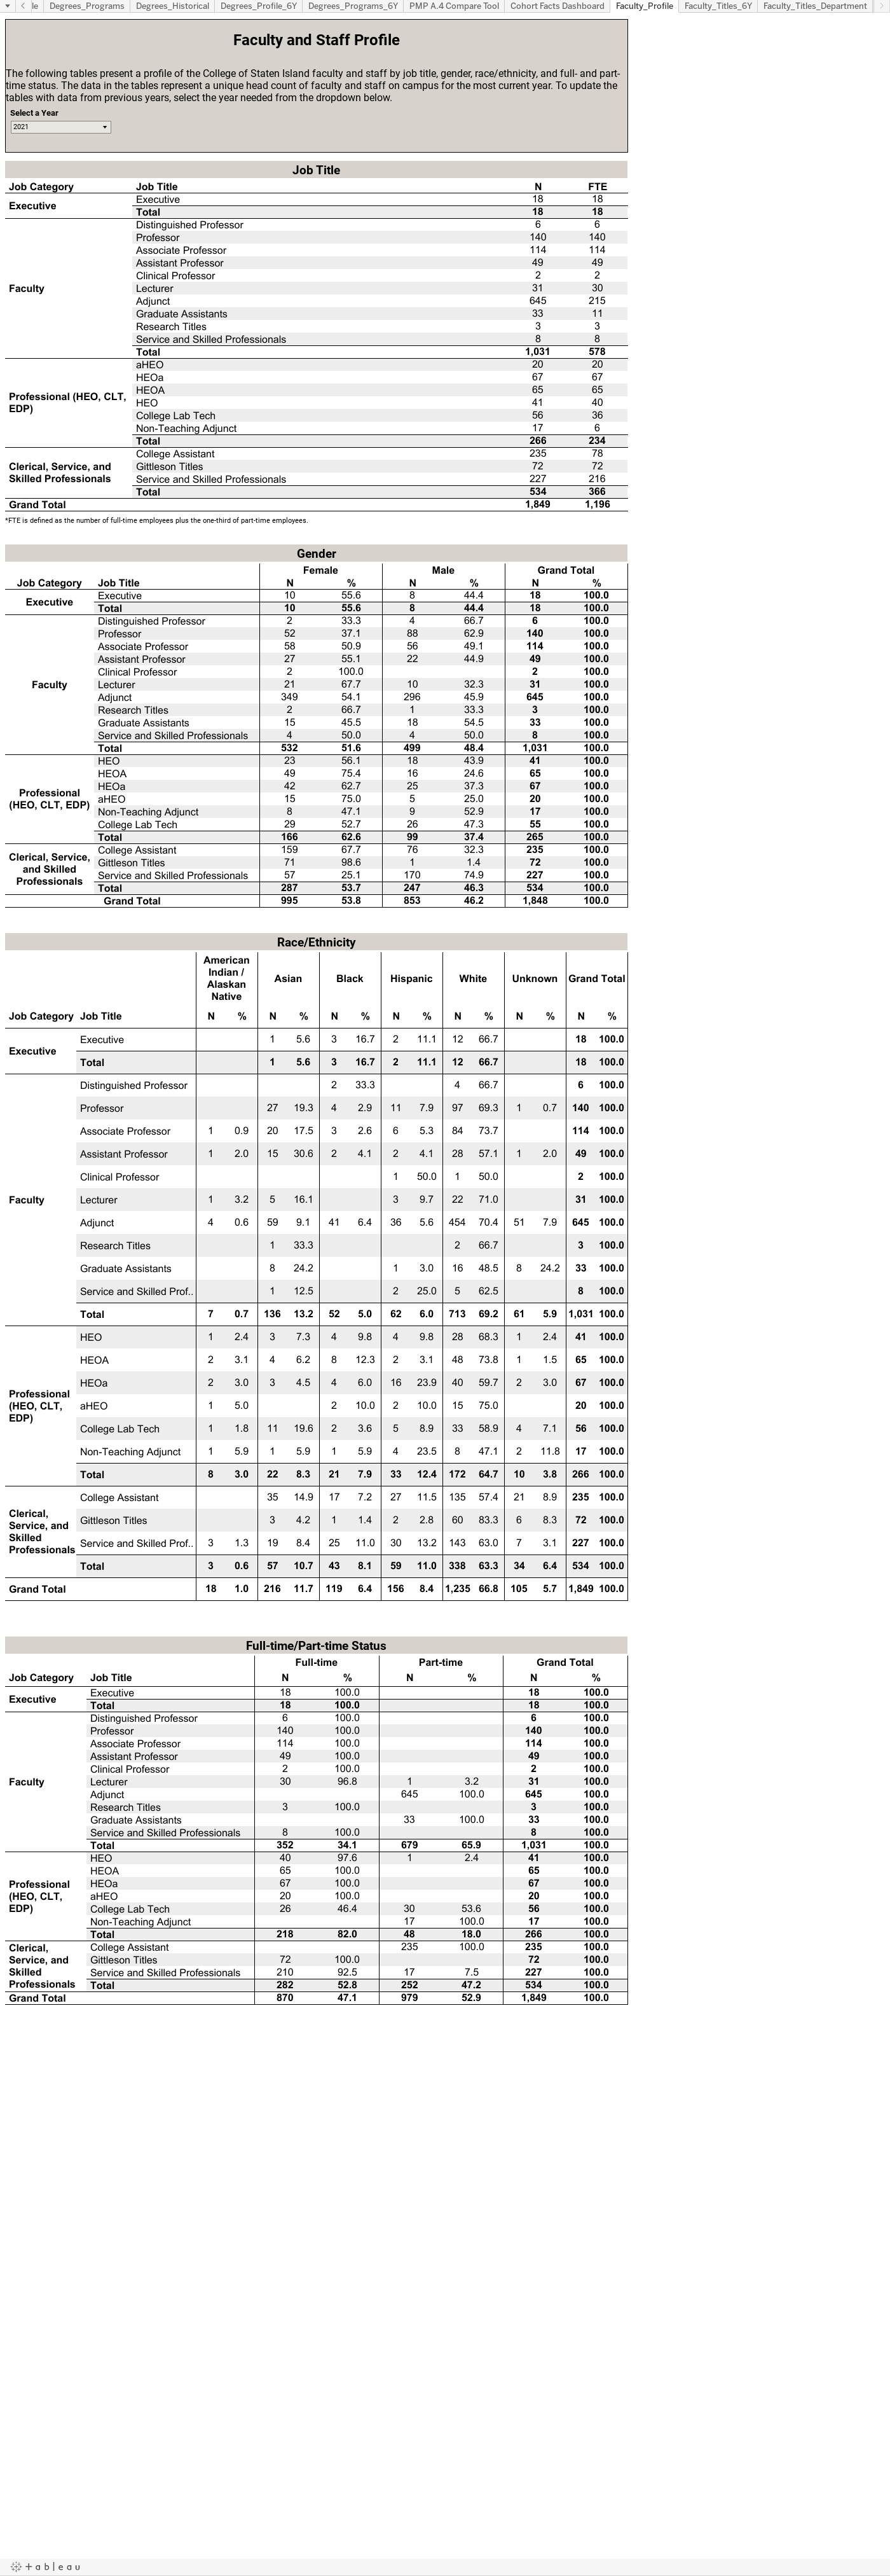 Faculty and Staff ProfileThe following tables present a profile of the College of Staten Island faculty and staff by job title, gender, race/ethnicity, and full- and part-time status. The data in the tables represent a unique head count of faculty and s